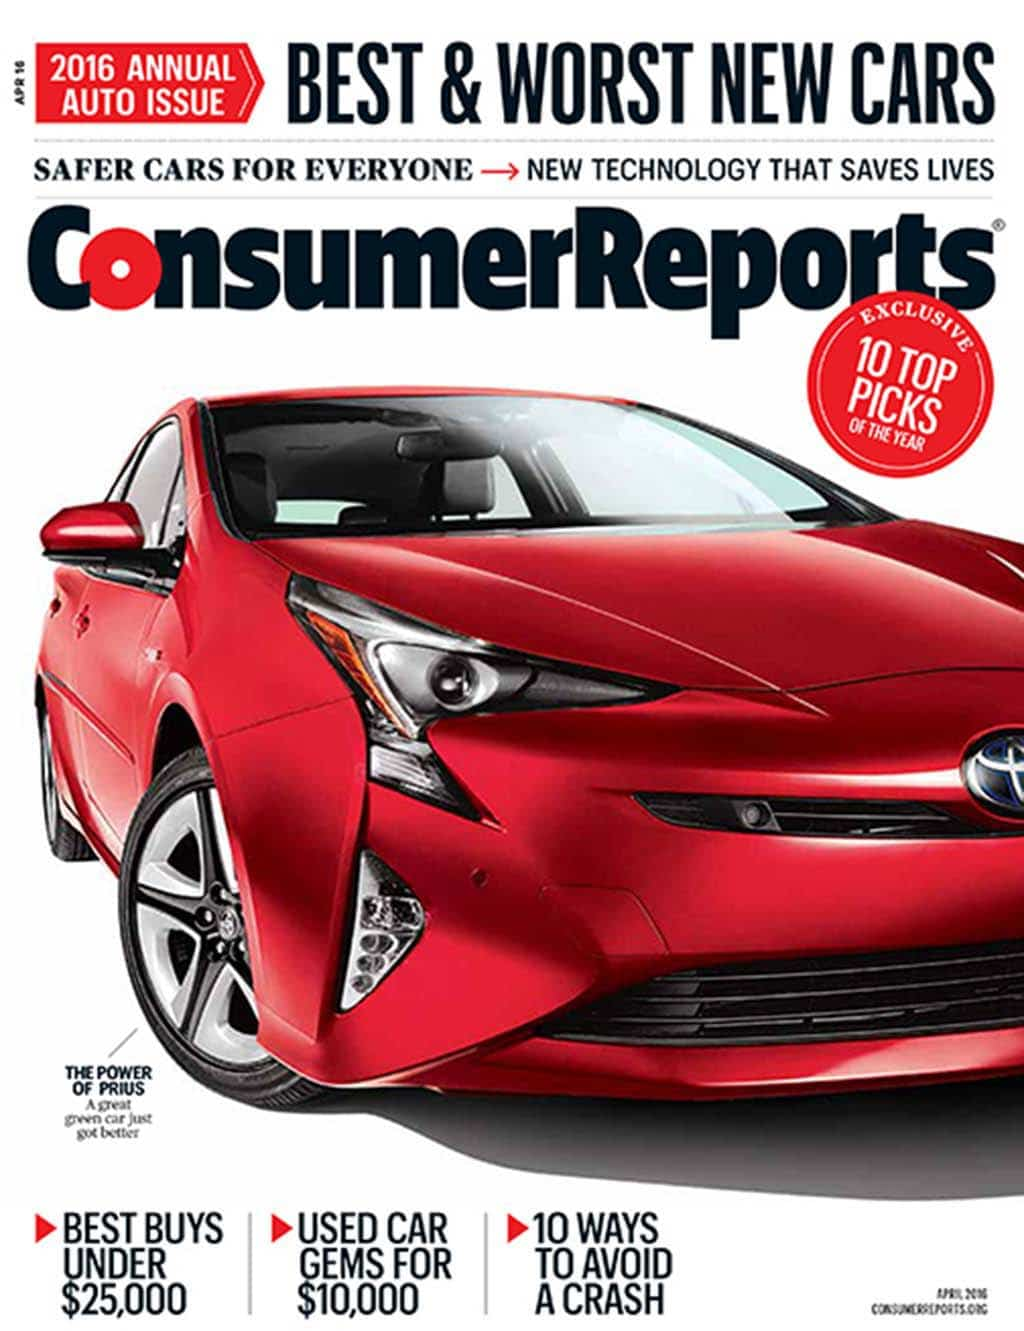 http://www.thedetroitbureau.com/wp-content/uploads/2016/02/Consumer-Reports-Car-Issue-2016-Cover.jpg